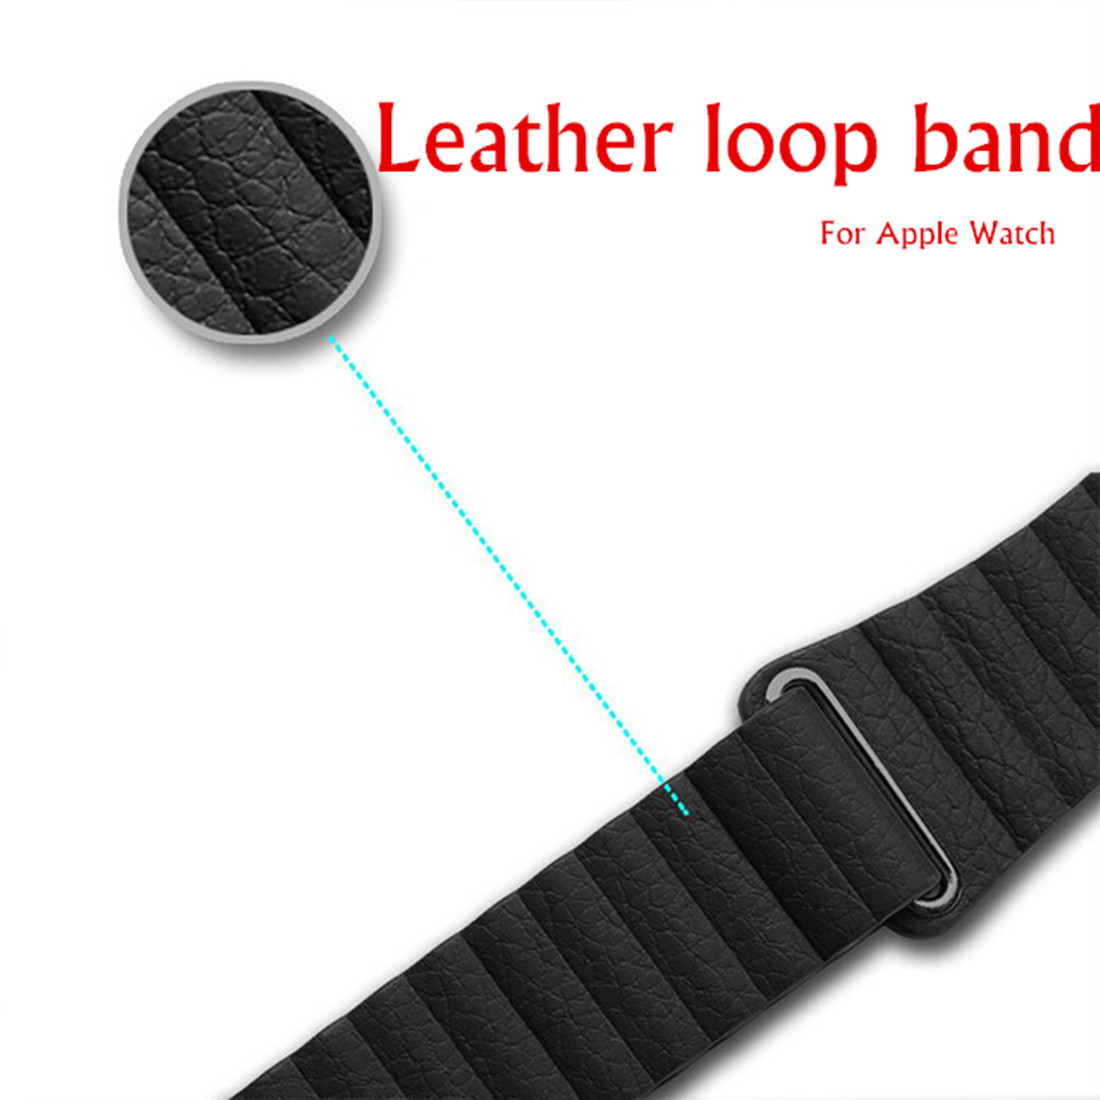 CRESTED Leather Loop band For Apple Watch 3 42mm/38mm iwatch 3 2 1 strap wrist bracelet Magnetic Closure leather Loop belt crested nylon band strap for apple watch band 3 42mm 38mm survival rope wrist bracelet watch strap for apple iwatch 3 2 1 black